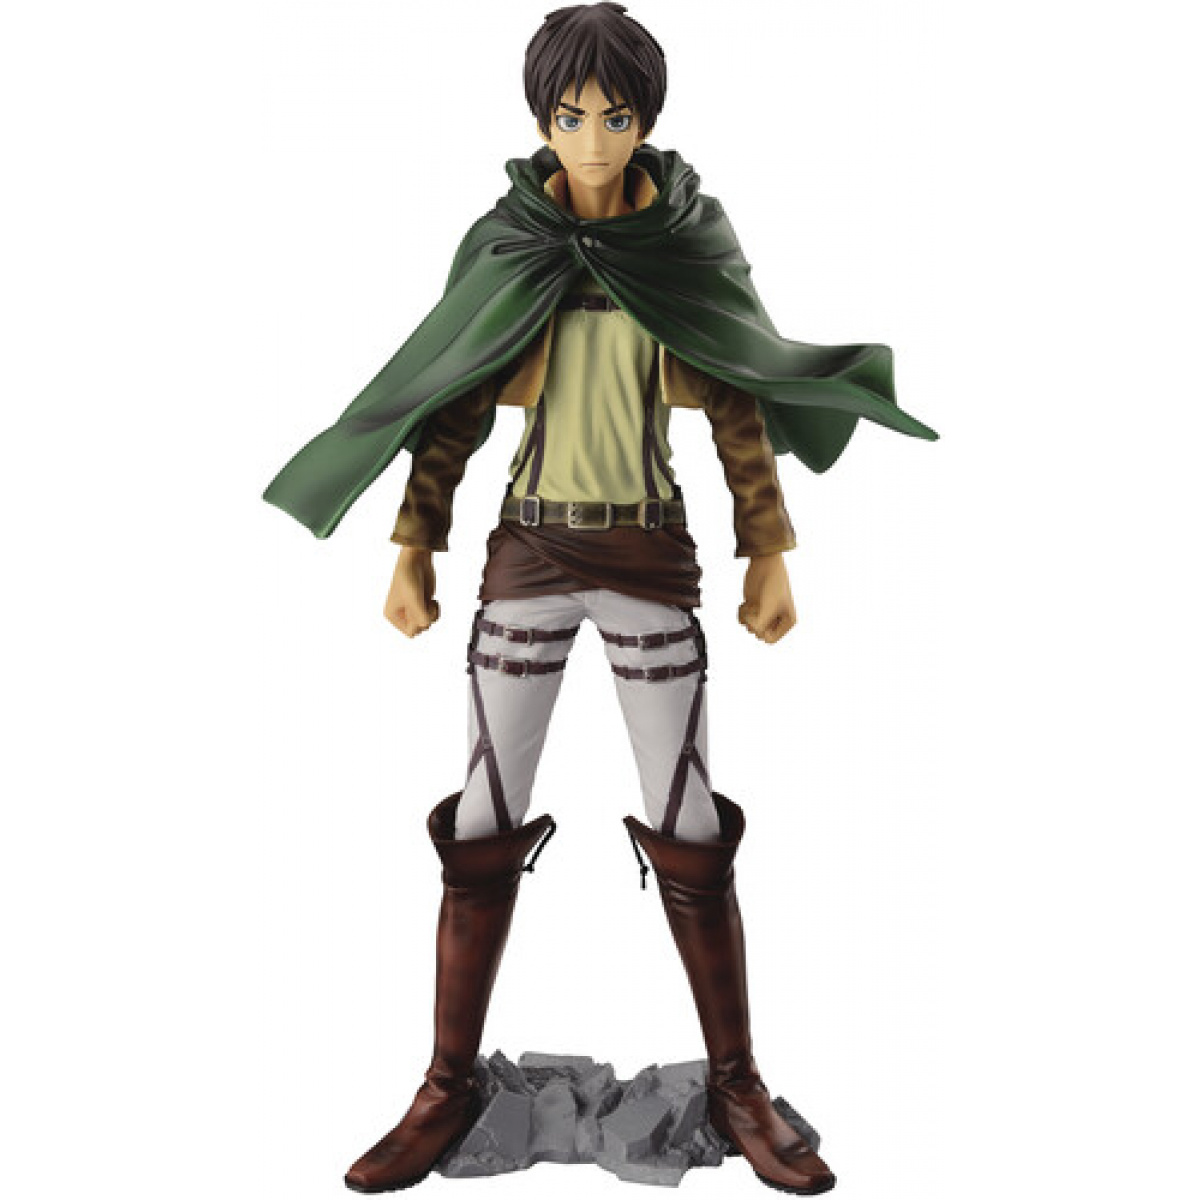 Attack on Titan Master Stars Place The Eren Yeager Figure Figures 4